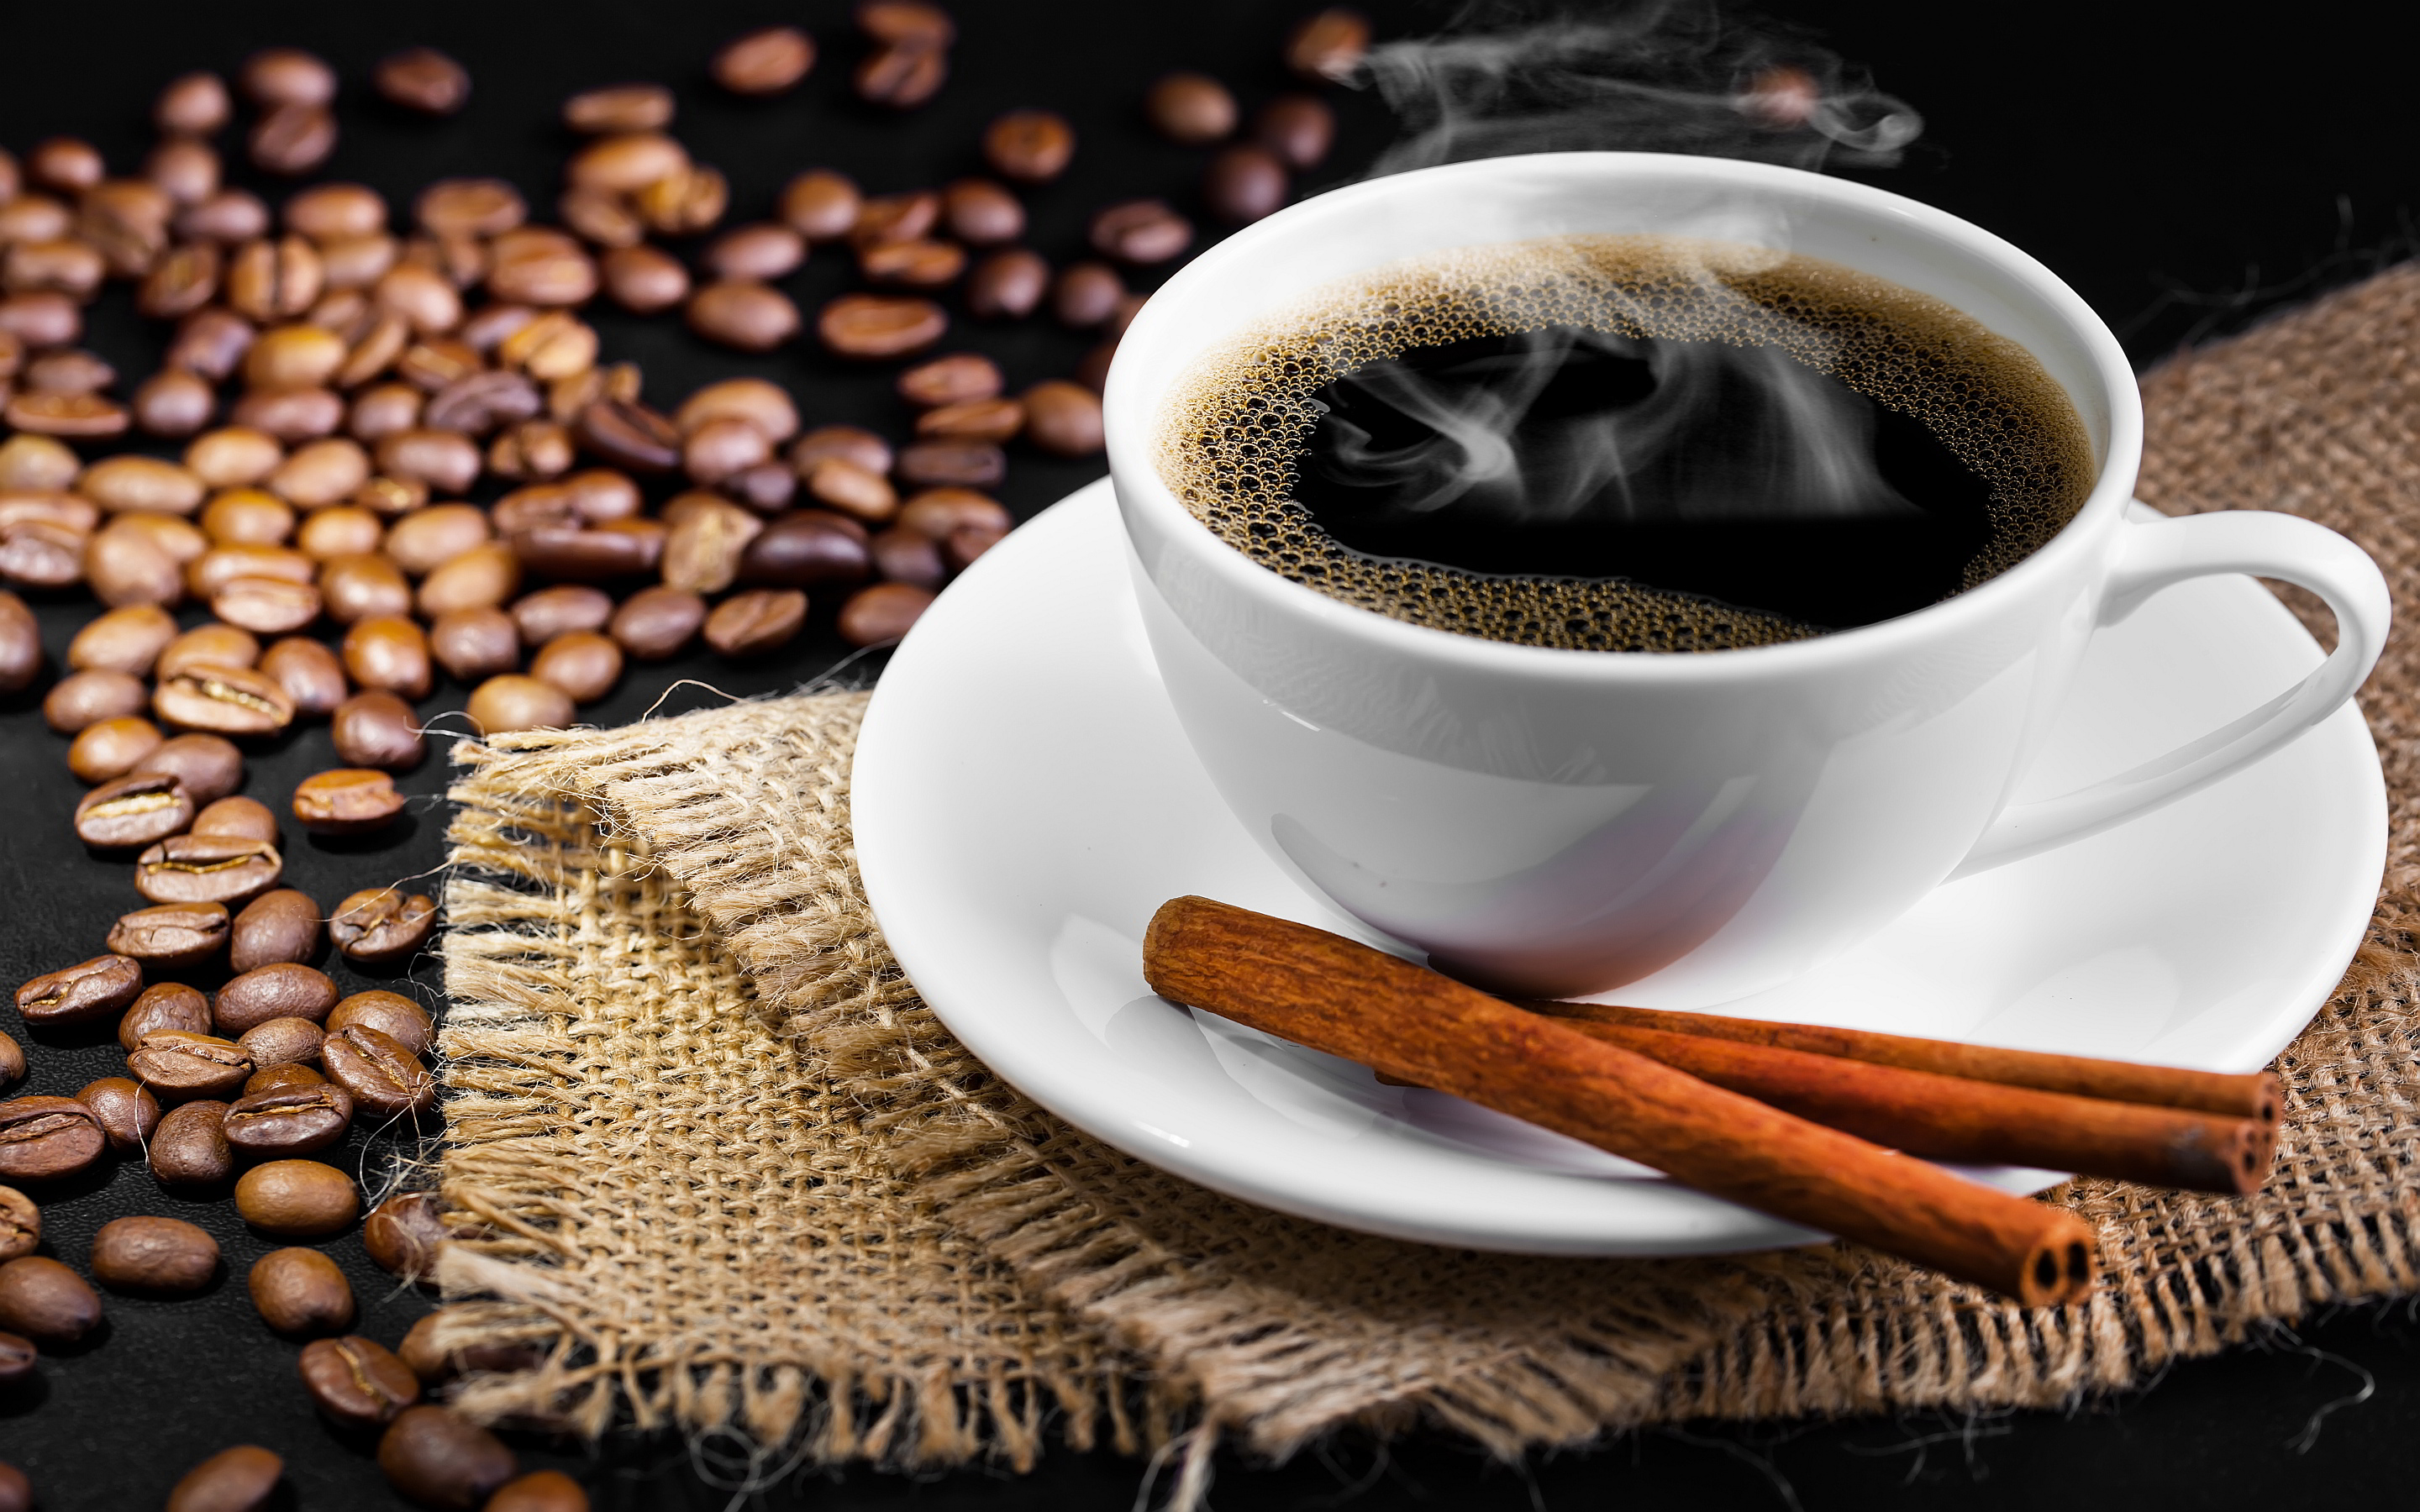 black-coffee-cinnamon-miss-california-usa-diet